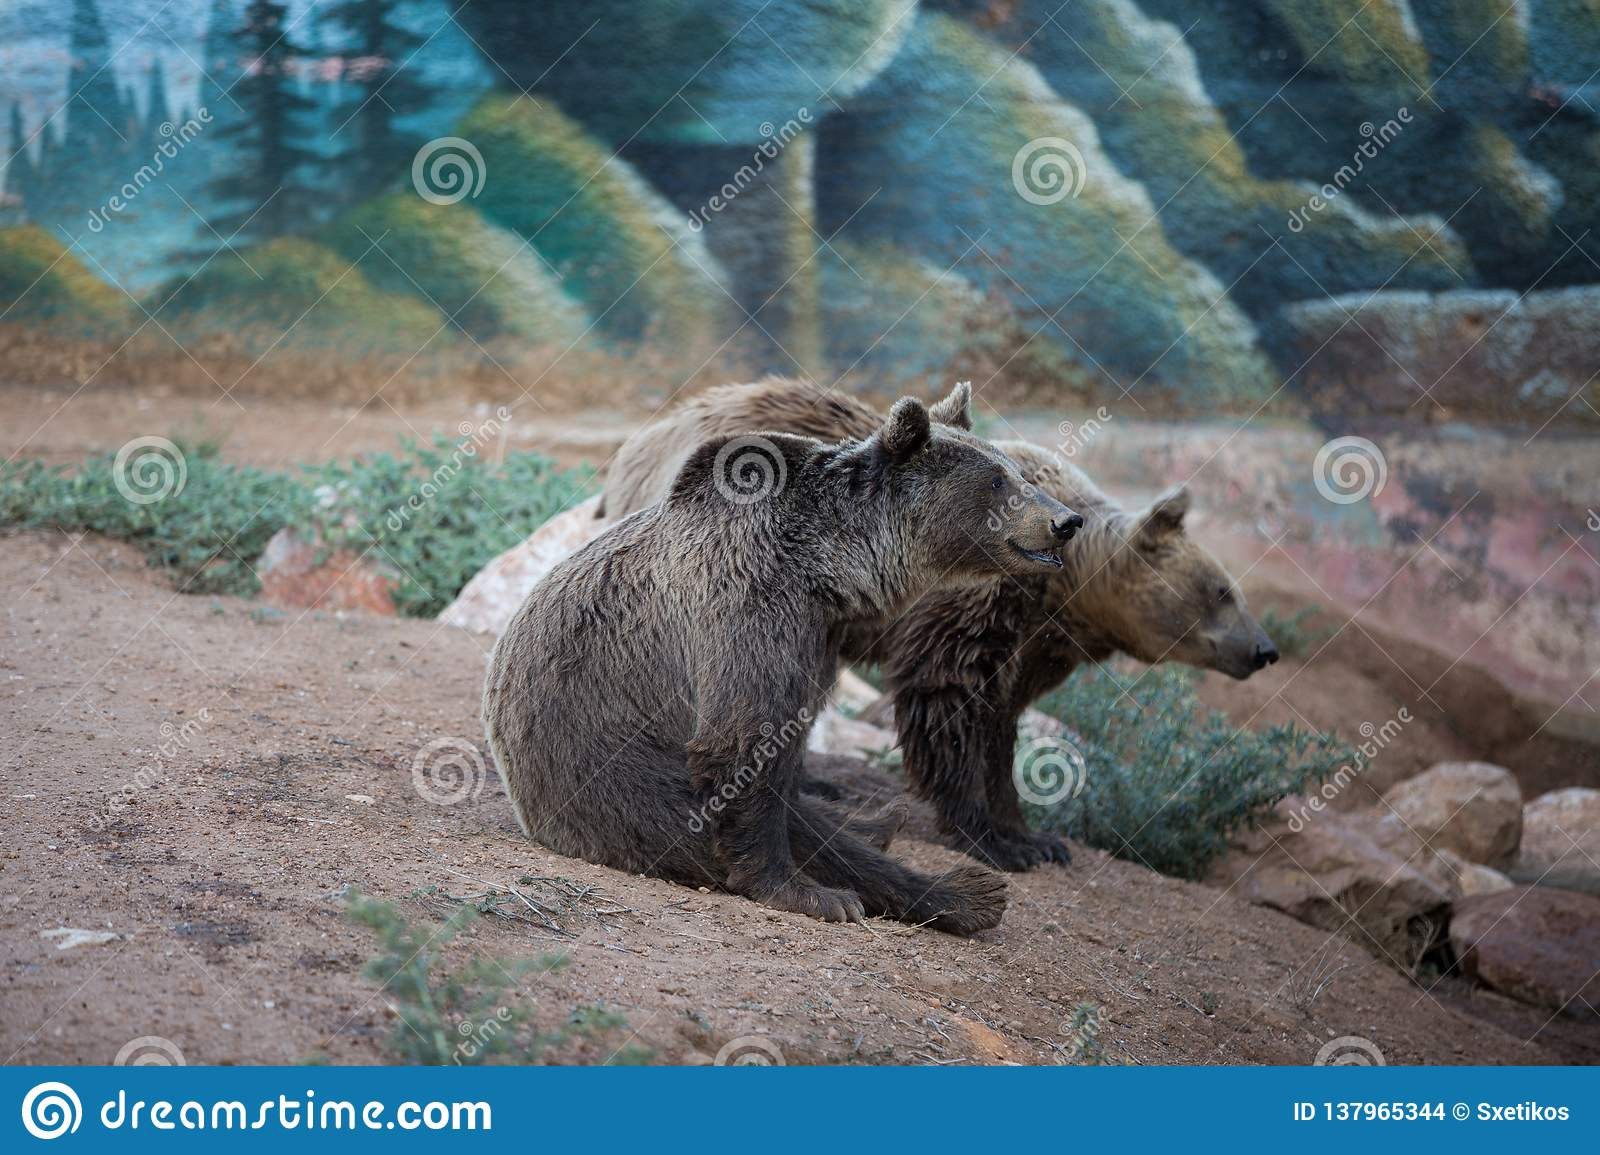 Two brown bears at the zoo